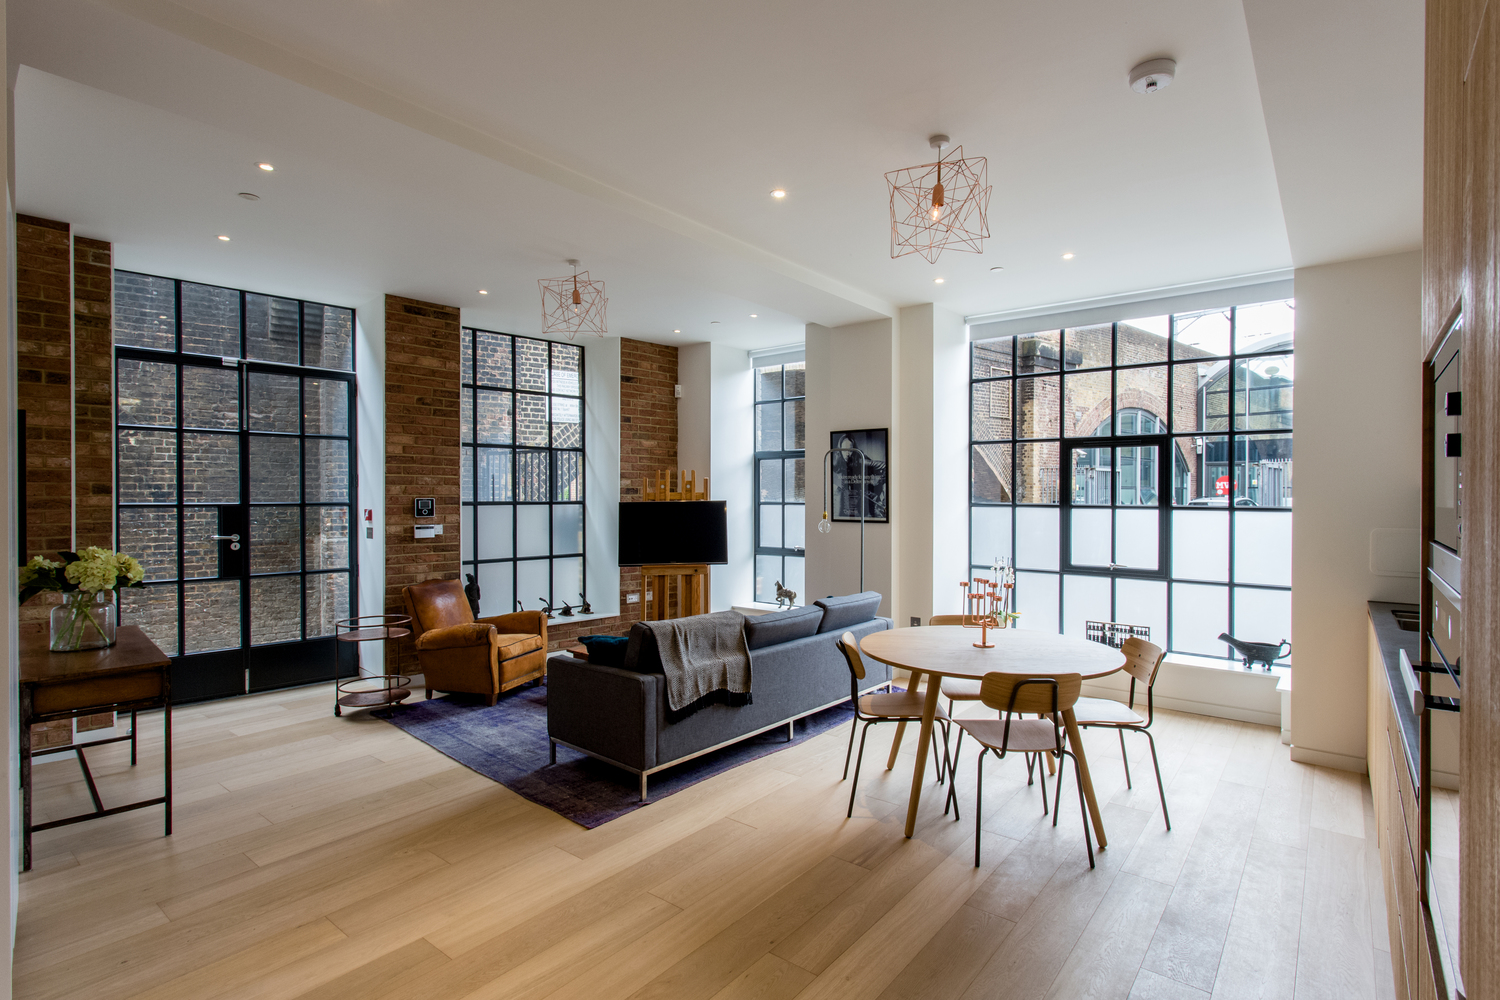 Zoning Living Room's Multiple Functional Areas with Decor and Lighting. Large studio in modern minimalistic style with elements of industrial style